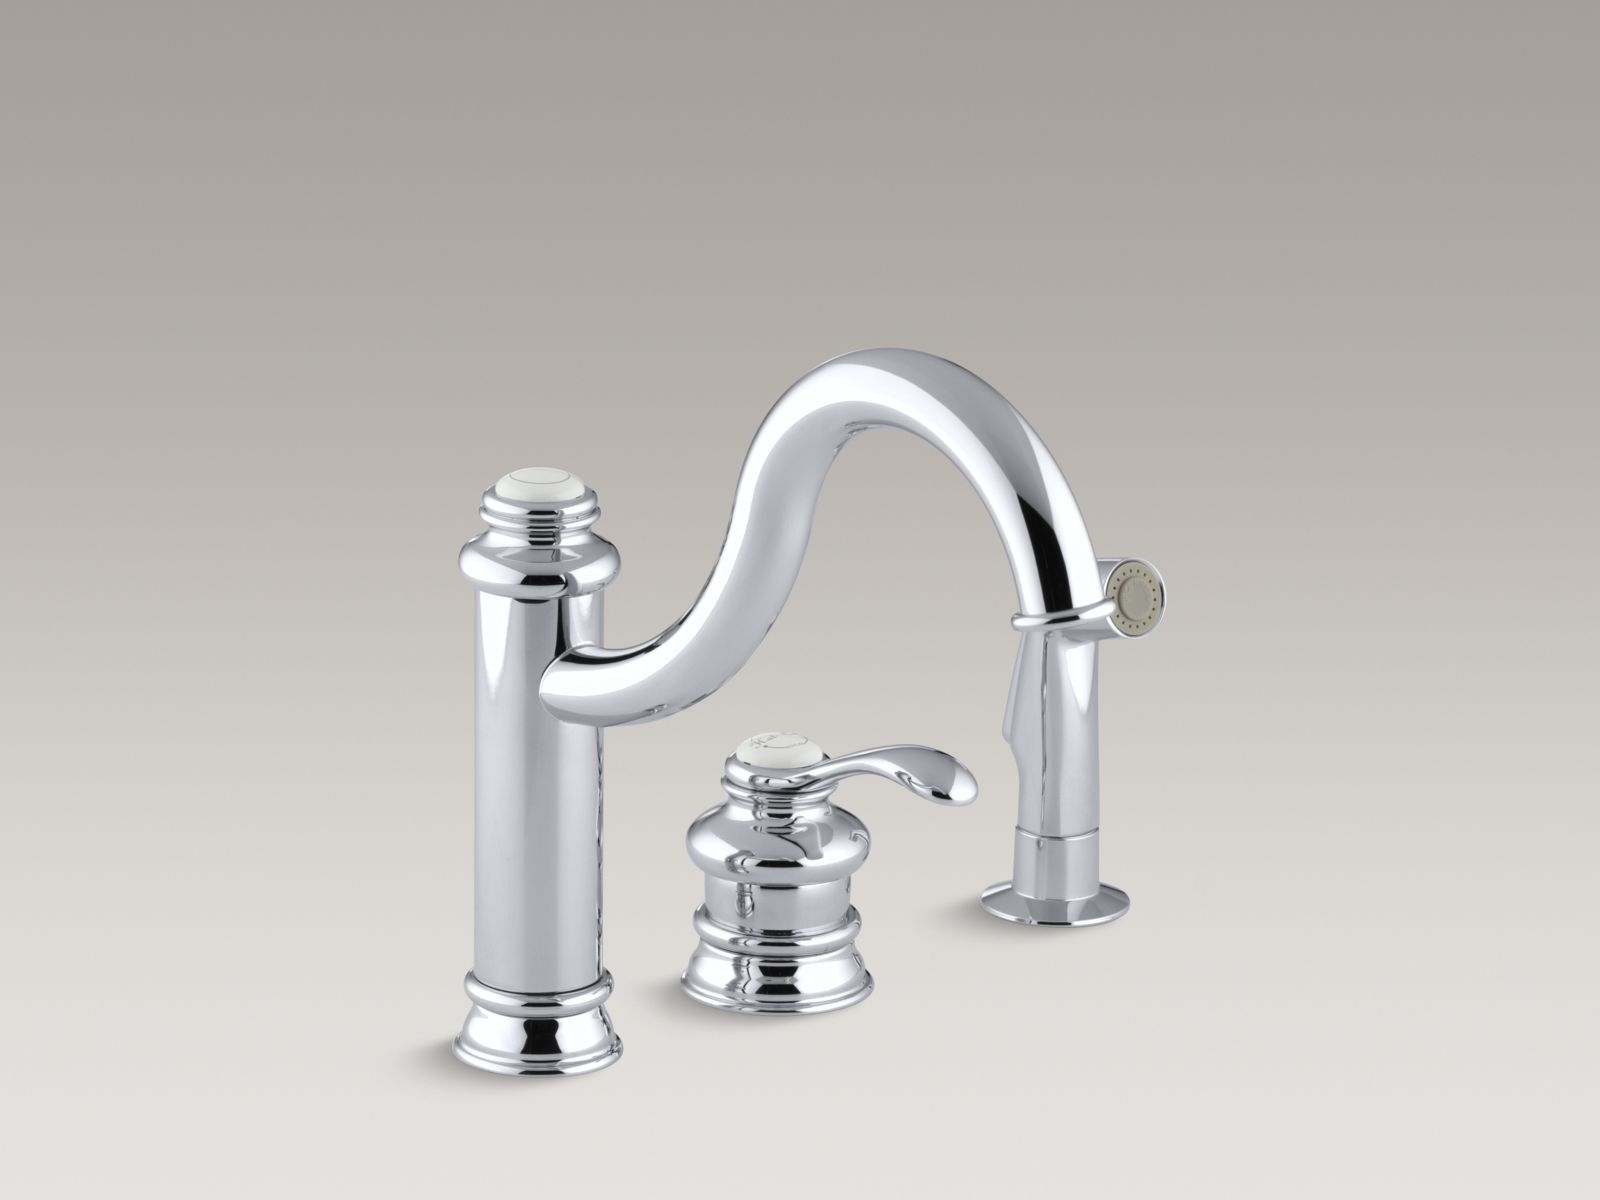 kohler purist single hole kitchen faucet kohler purist single hole kitchen faucet buyplumbing category two handle with side spray 1600 x 1200